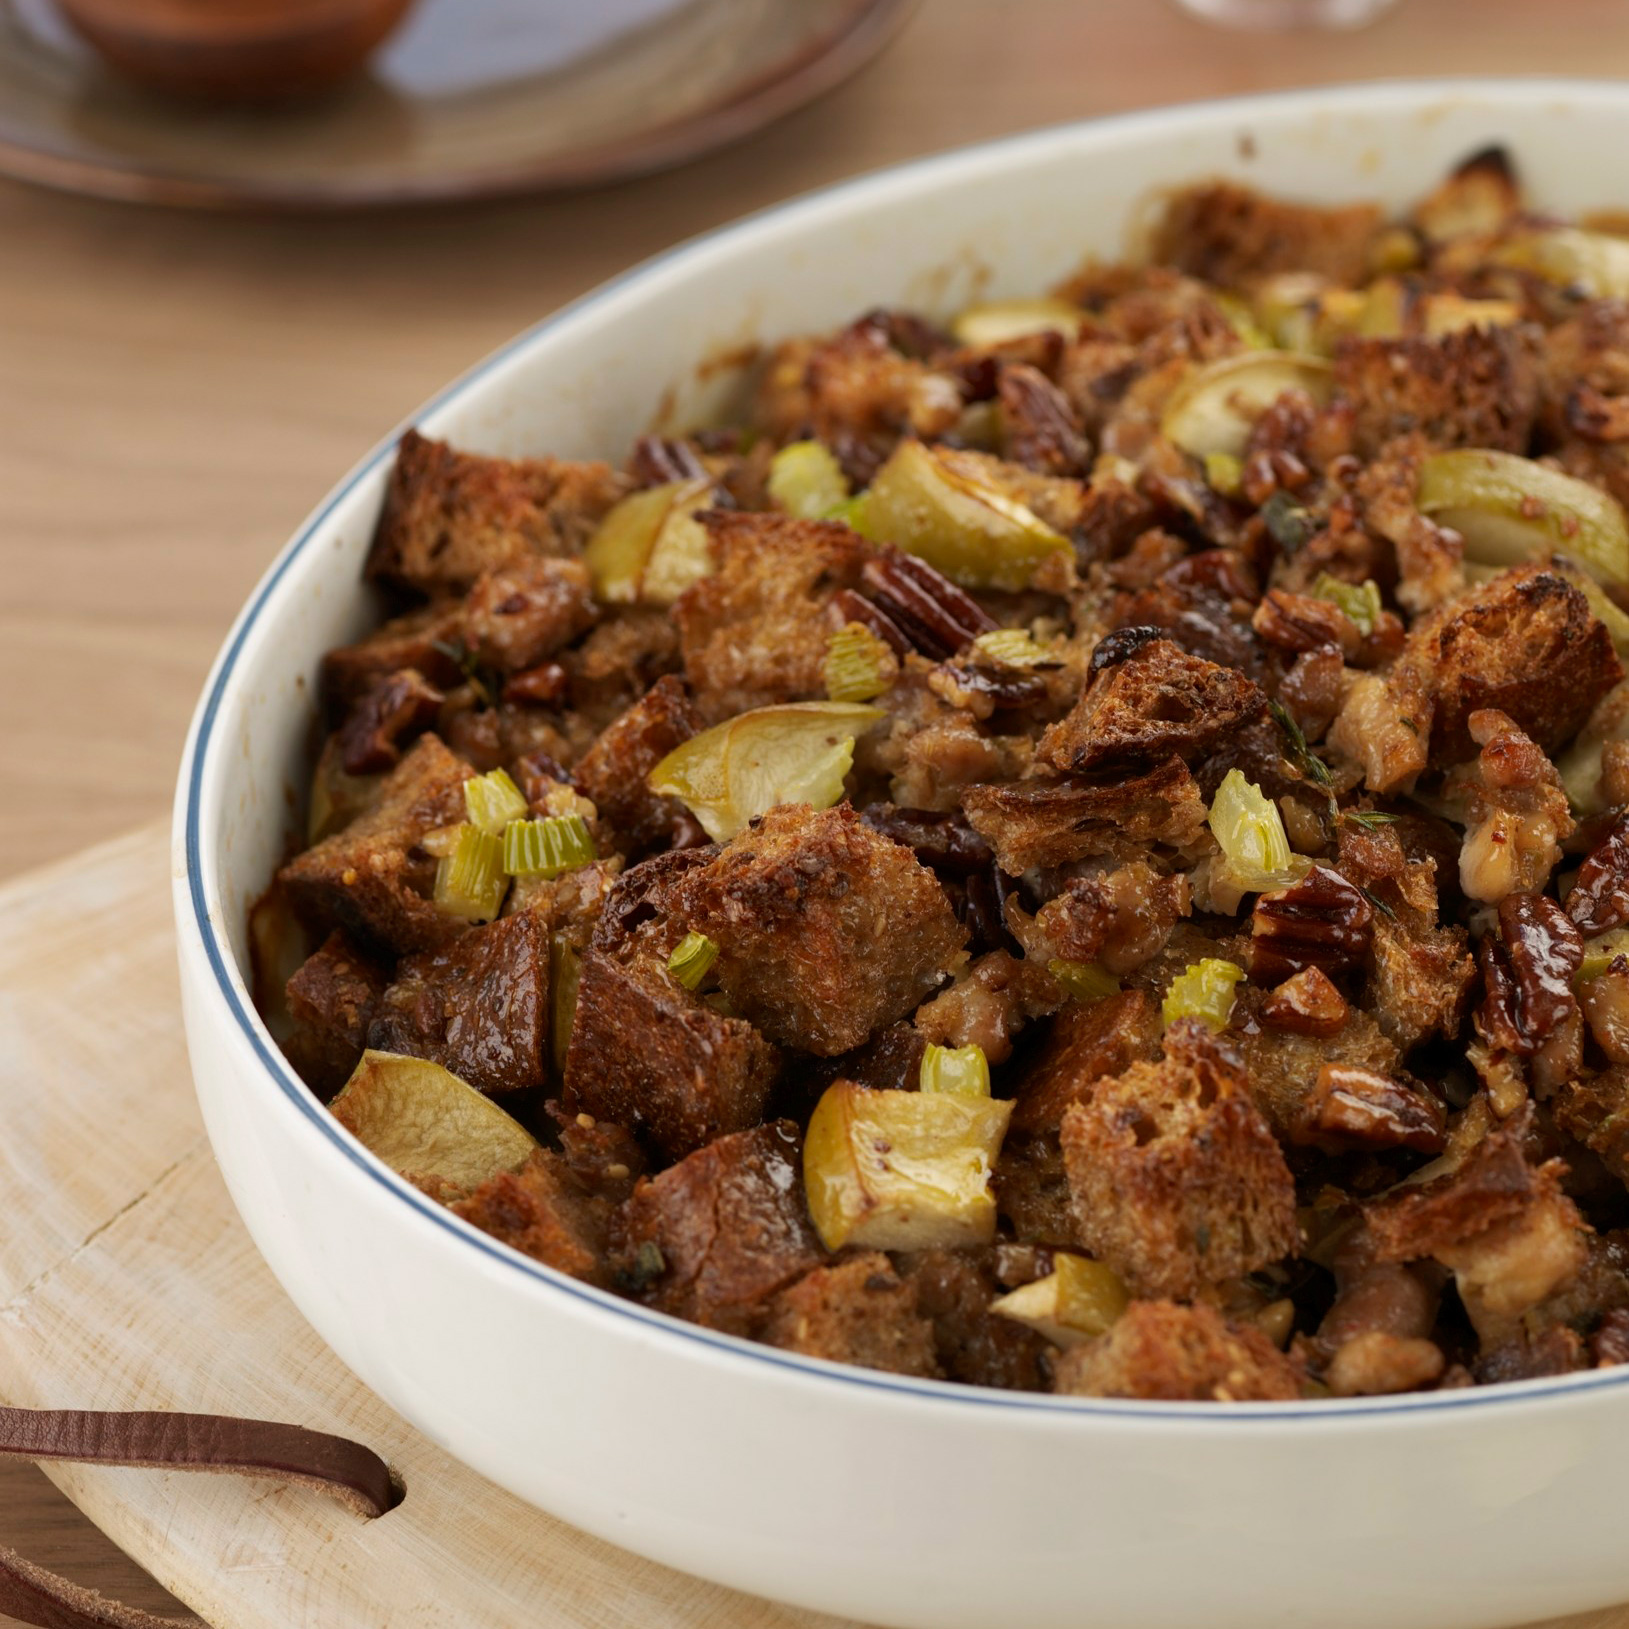 200911-r-apple-stuffing.jpg